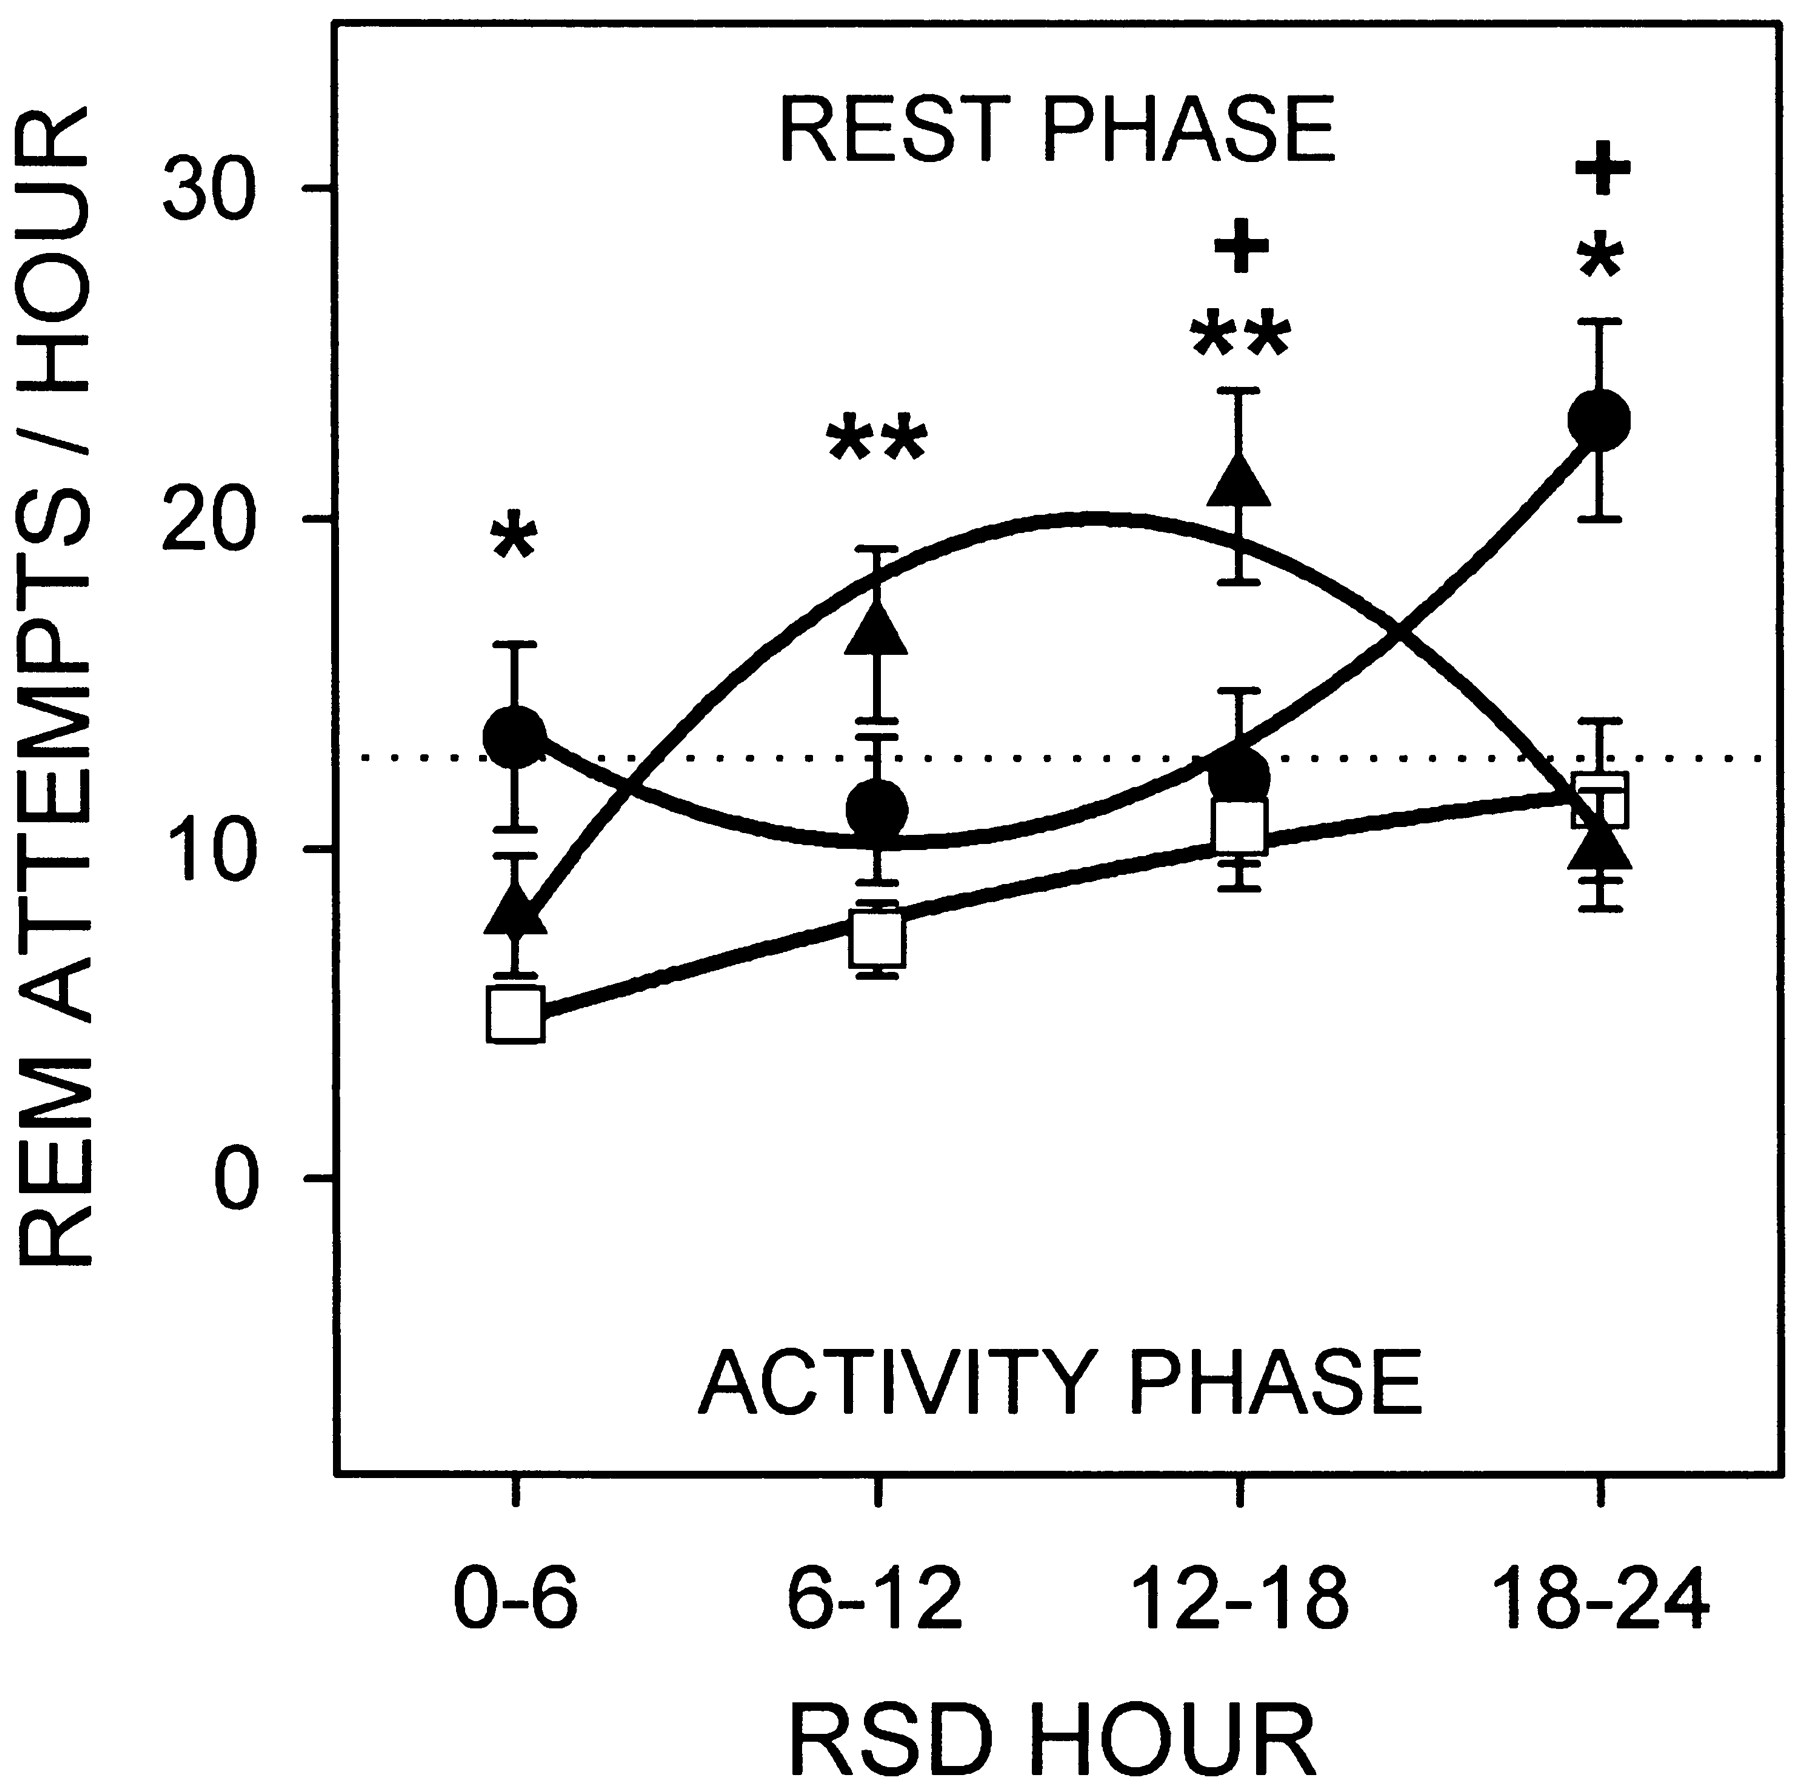 circadian and homeostatic control of rapid eye movement (rem) sleep